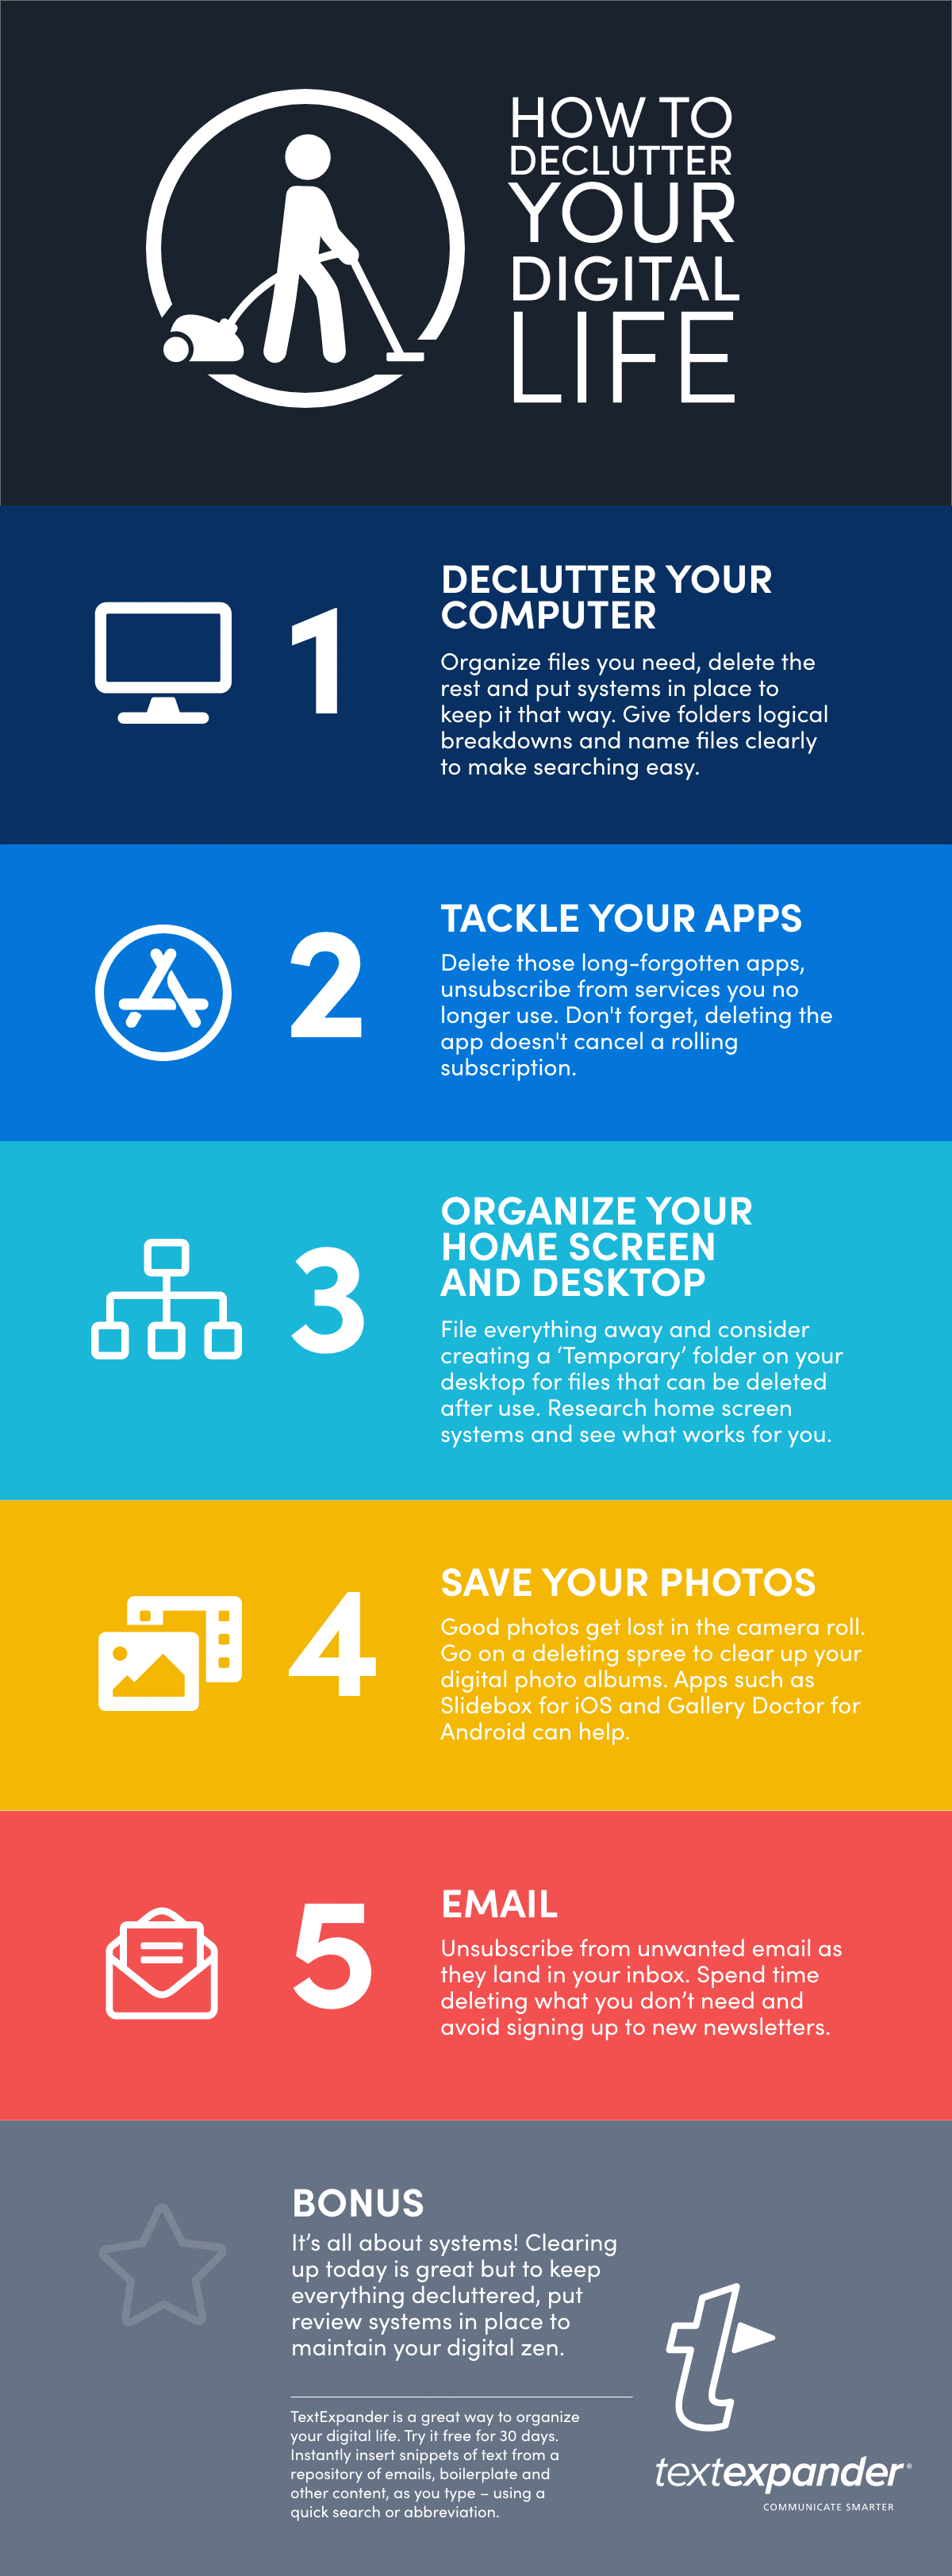 infographic showing 5 steps to decluttering: 1. declutter your computer 2. tackle your apps 3. organize your home screen and desktop 4. save your photos 5. email 6. bonus: create systems to stay organized